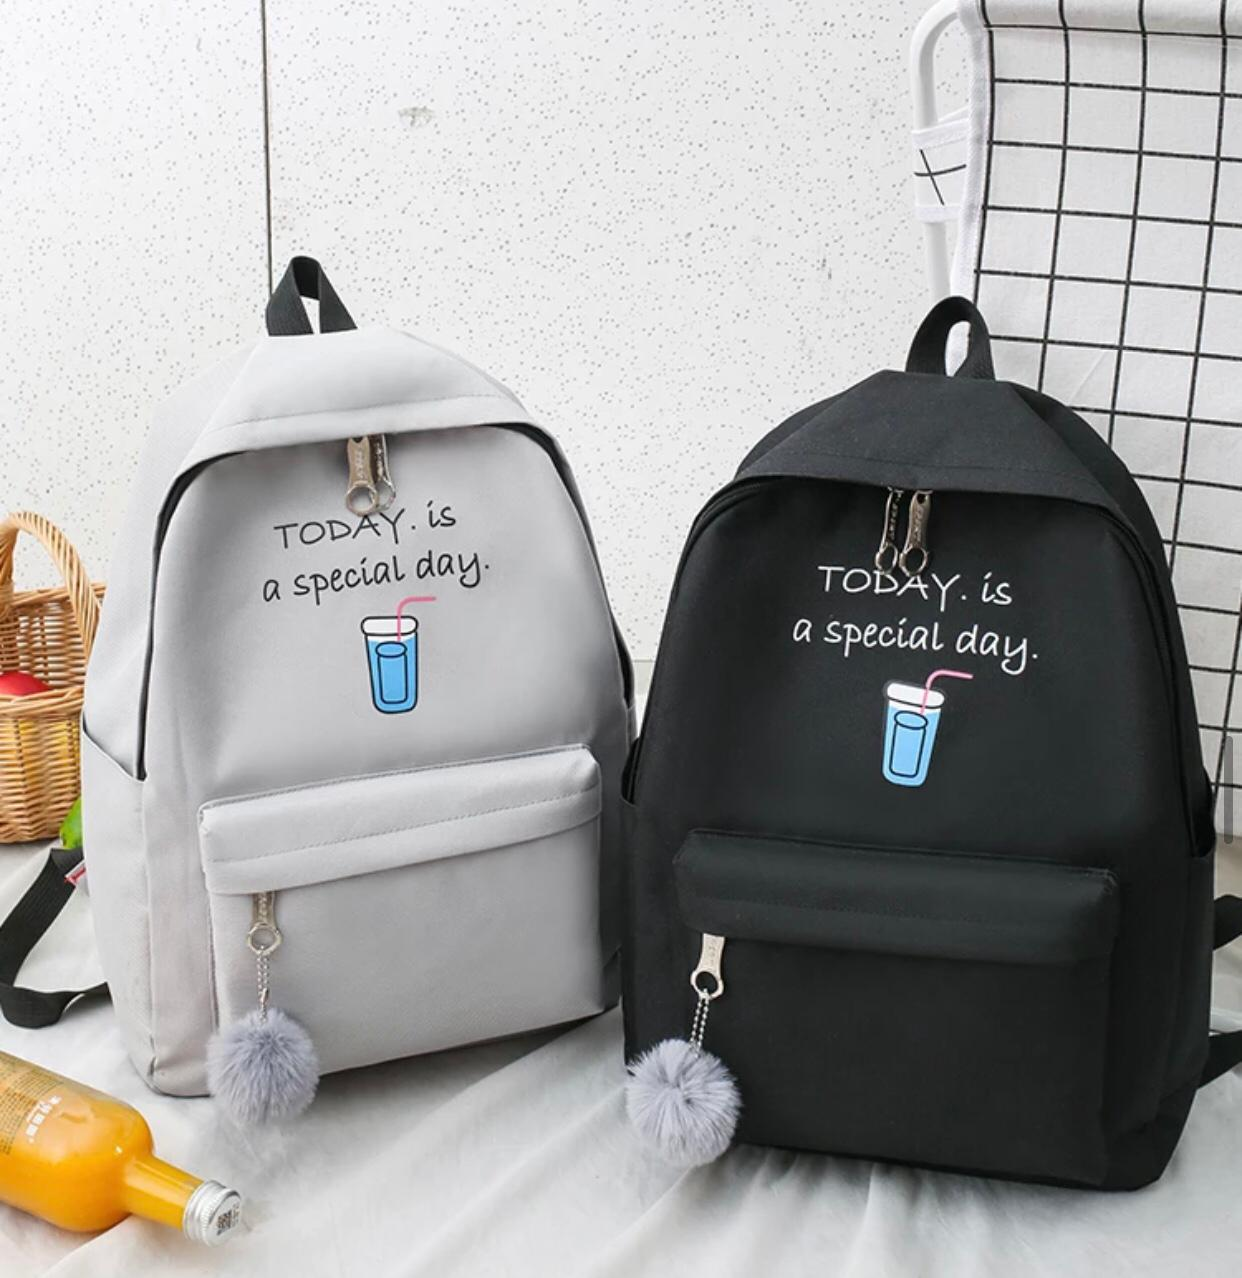 Eshaalfashion 4pcs Set Backpack FashionGb